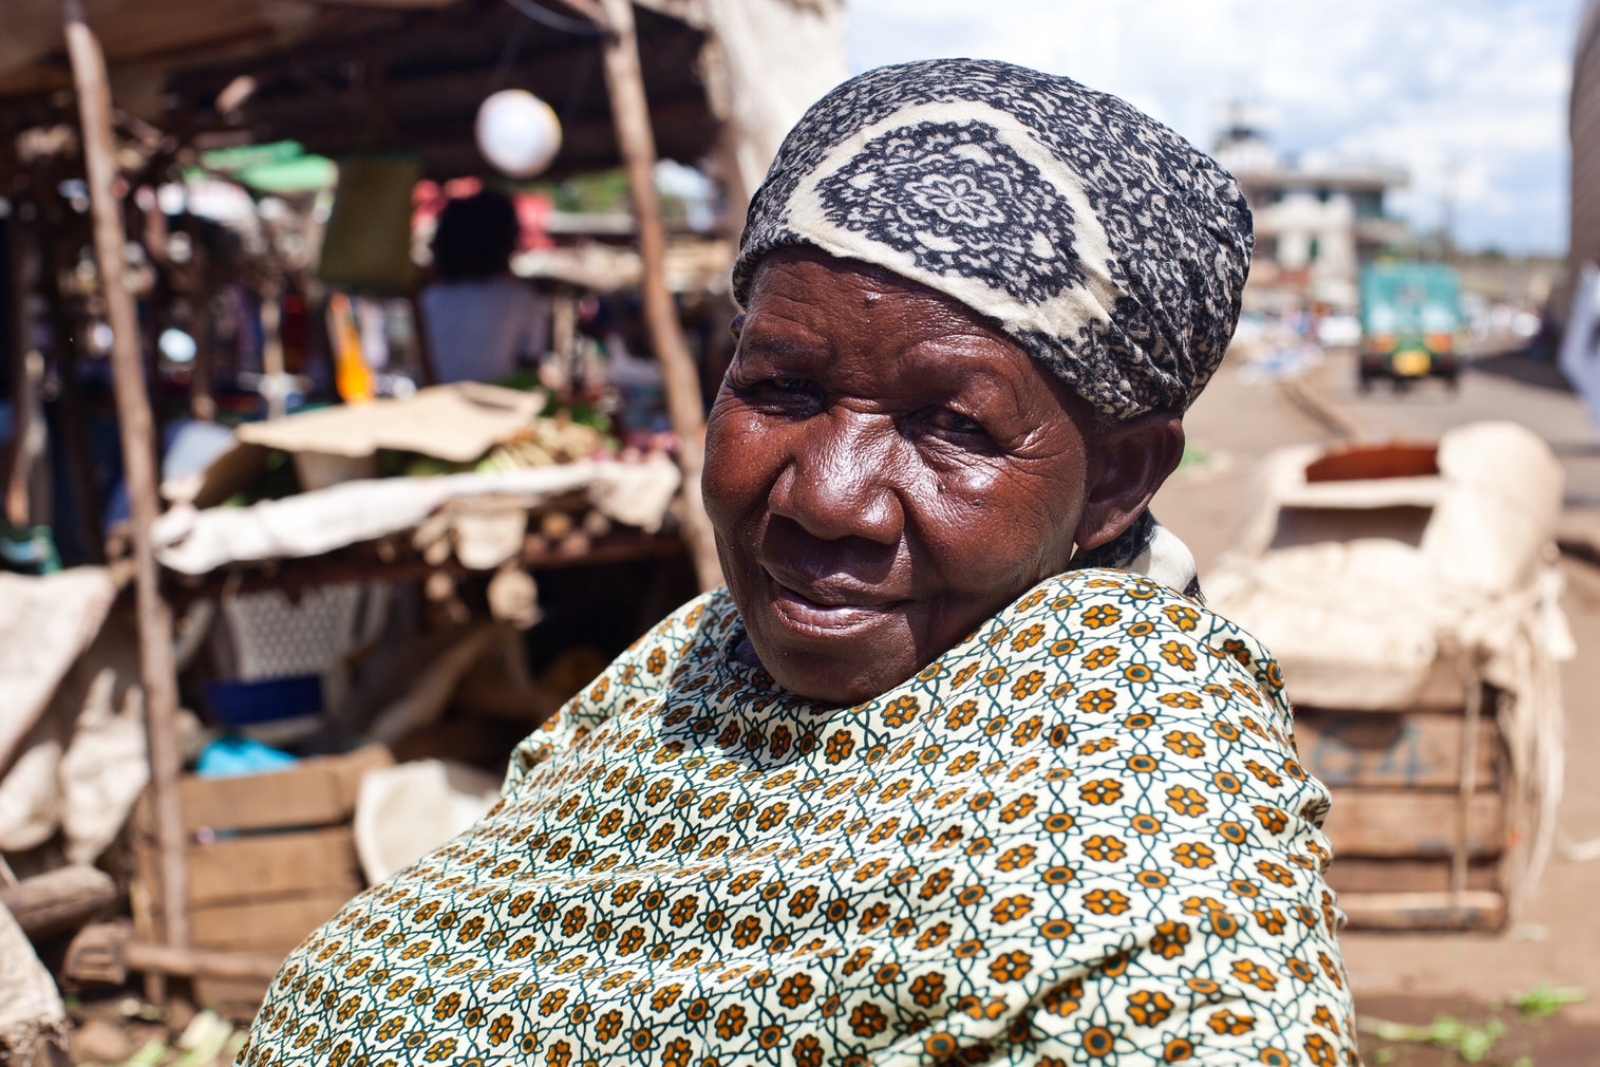 """Wilkista  fears what will happen if she is evicted from Kondele.   """"I am old, if we are moved I will just have to do business on my doorstep, but there won't be as many customers""""."""